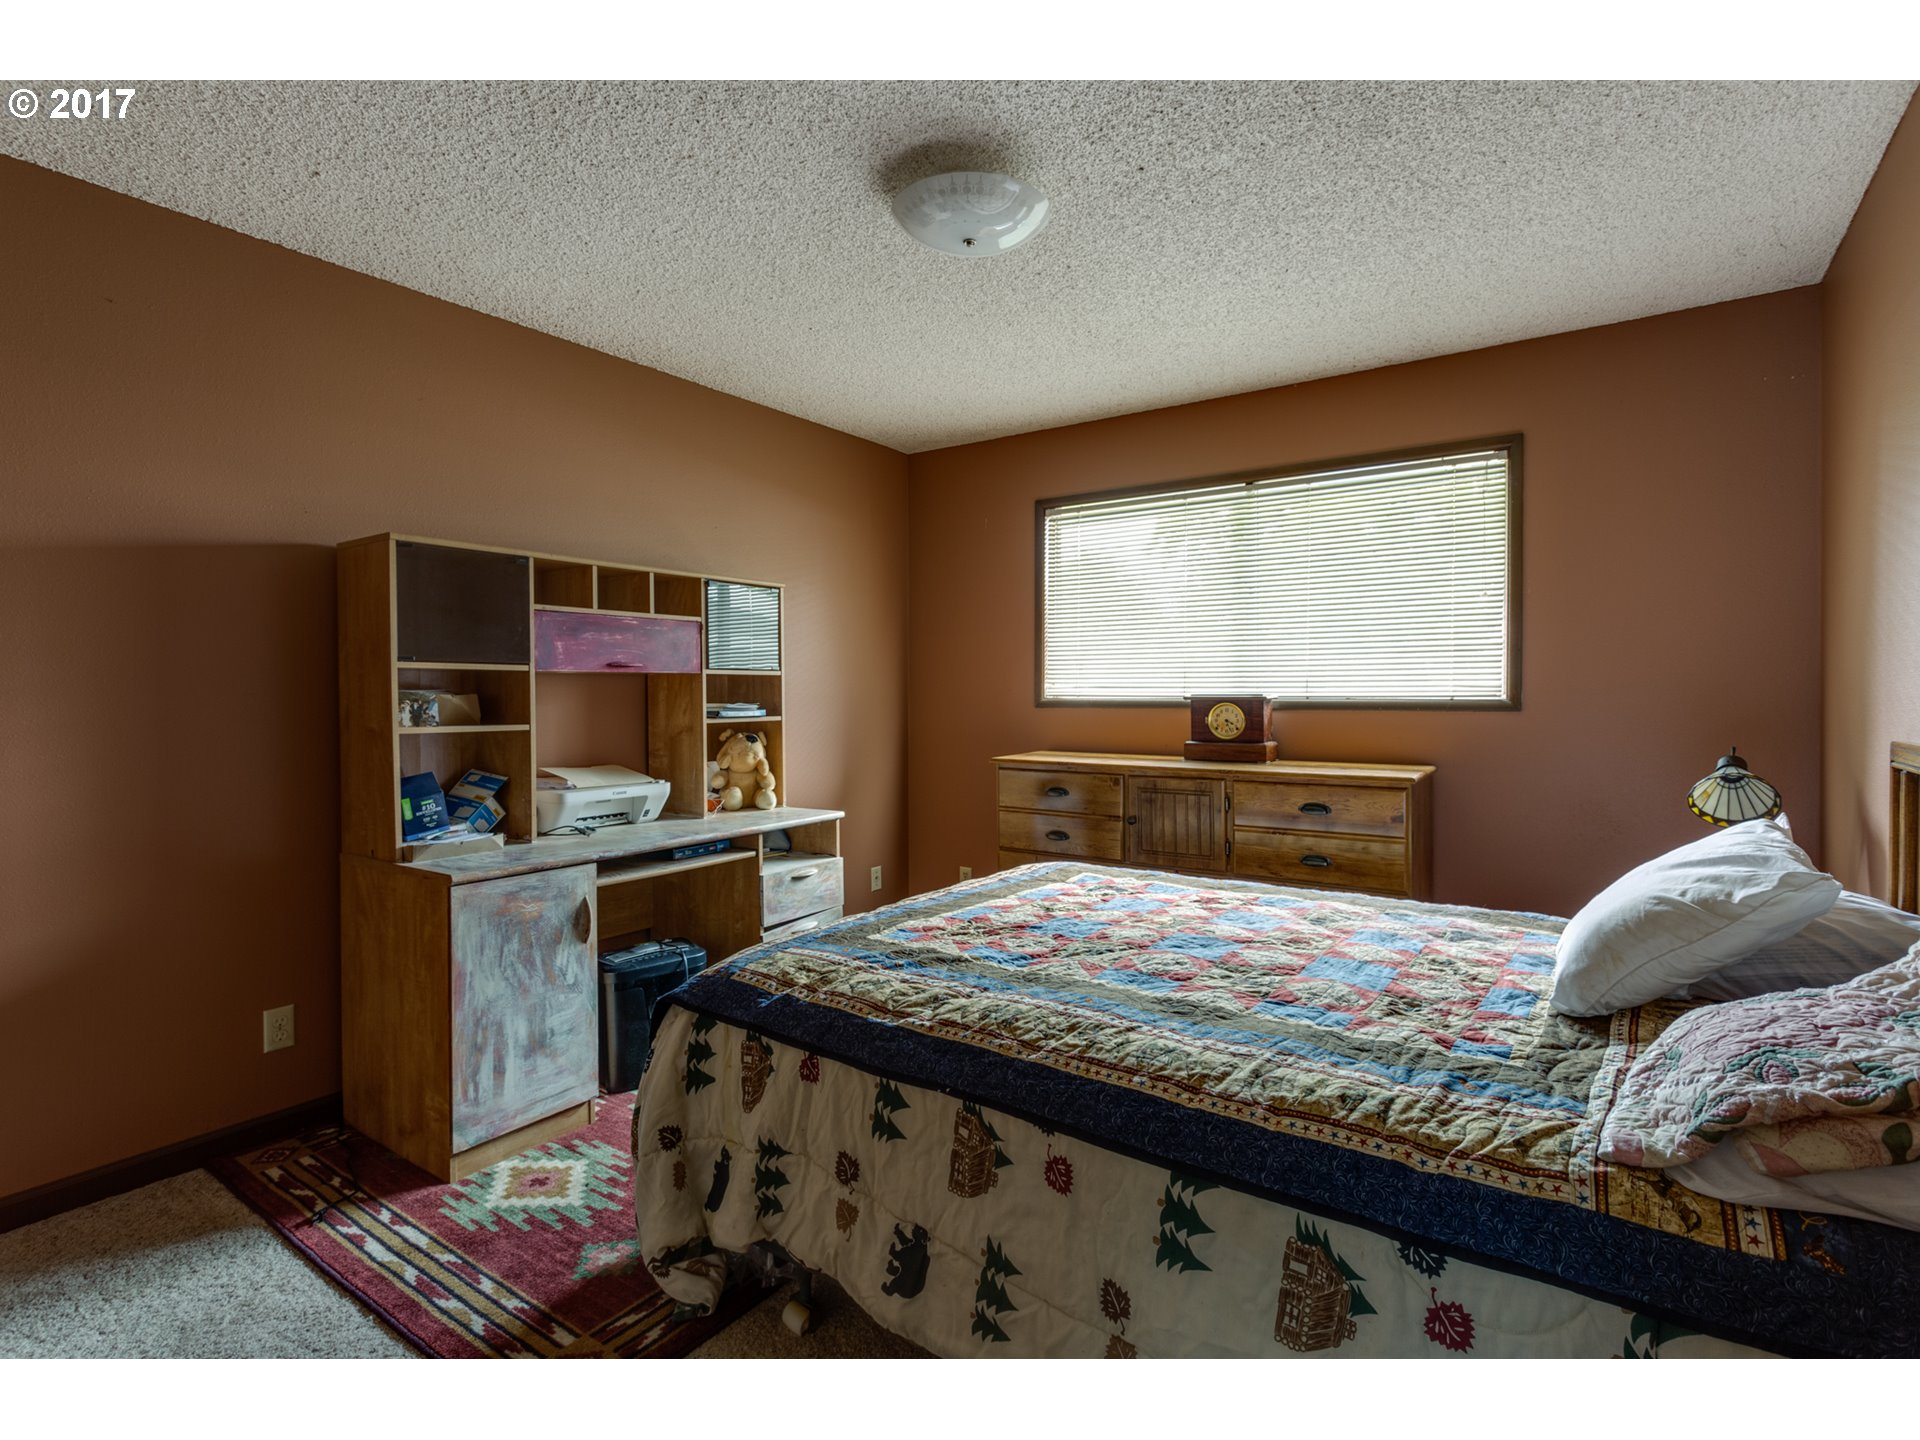 1305 S 11TH AVE Kelso, WA 98626 - MLS #: 17665581